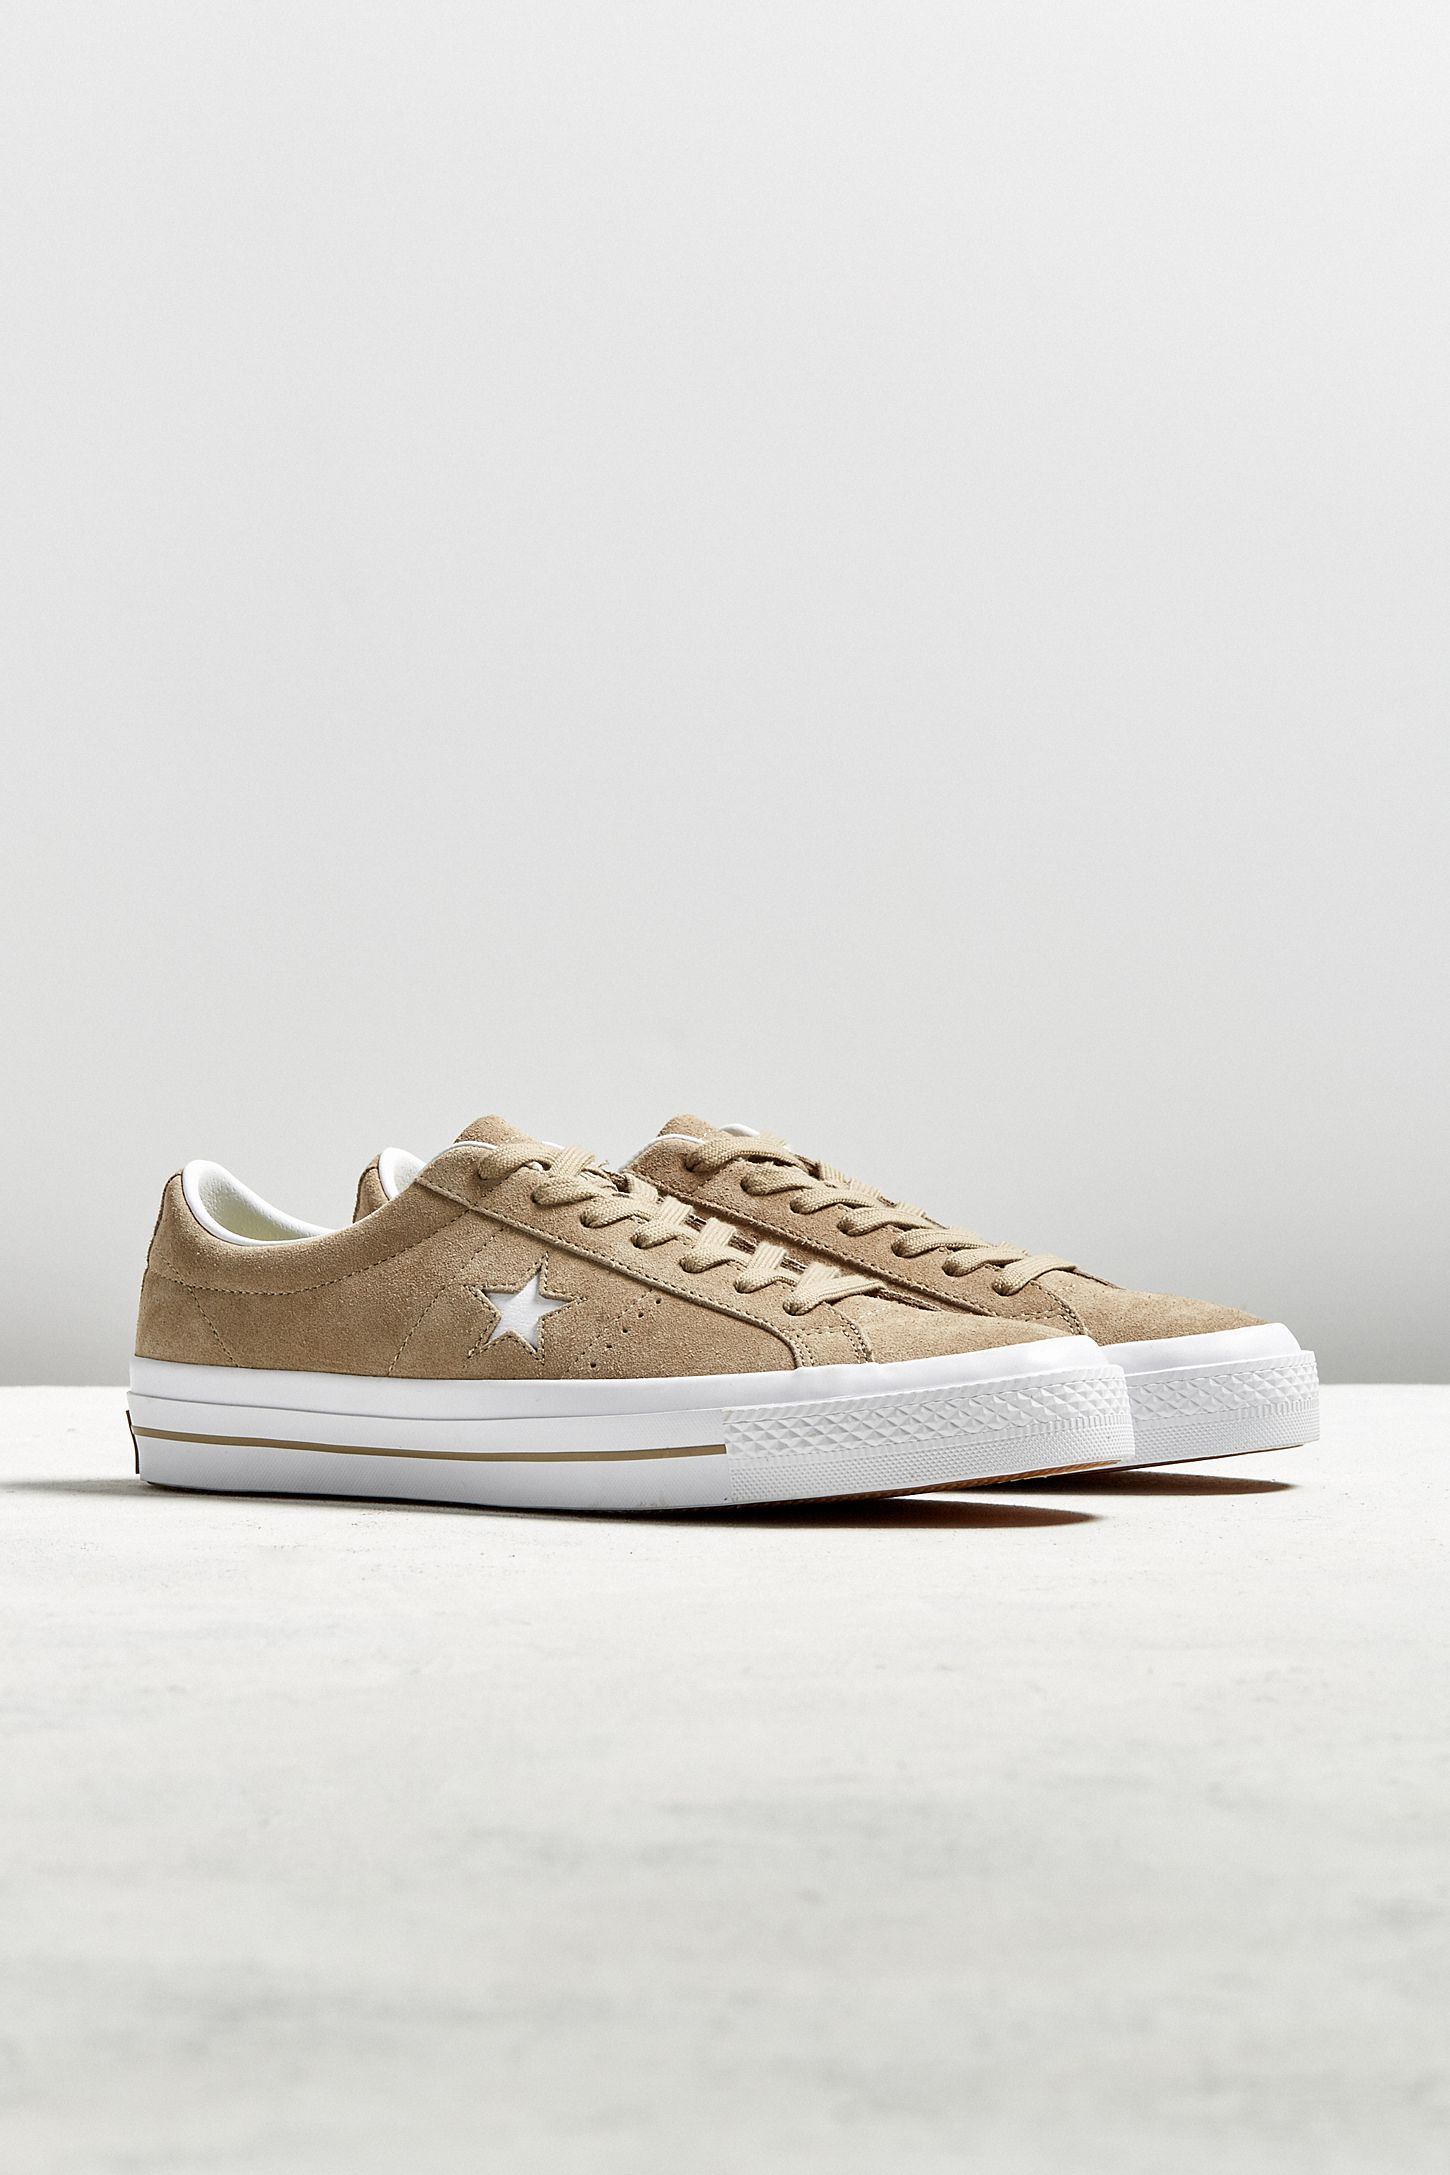 601eccadd70c Converse CONS One Star Seasonal Sneaker